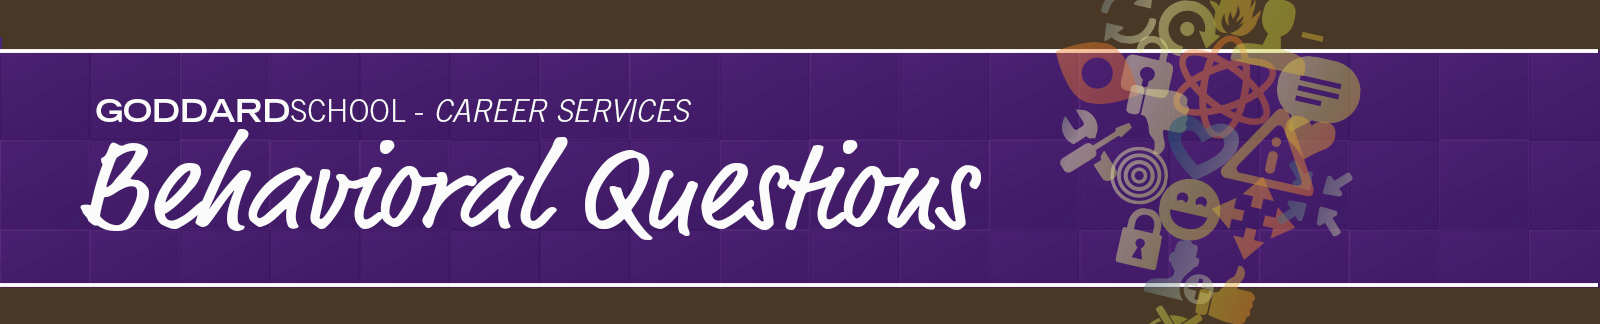 Goddard School: Career Services Behavioral Questions